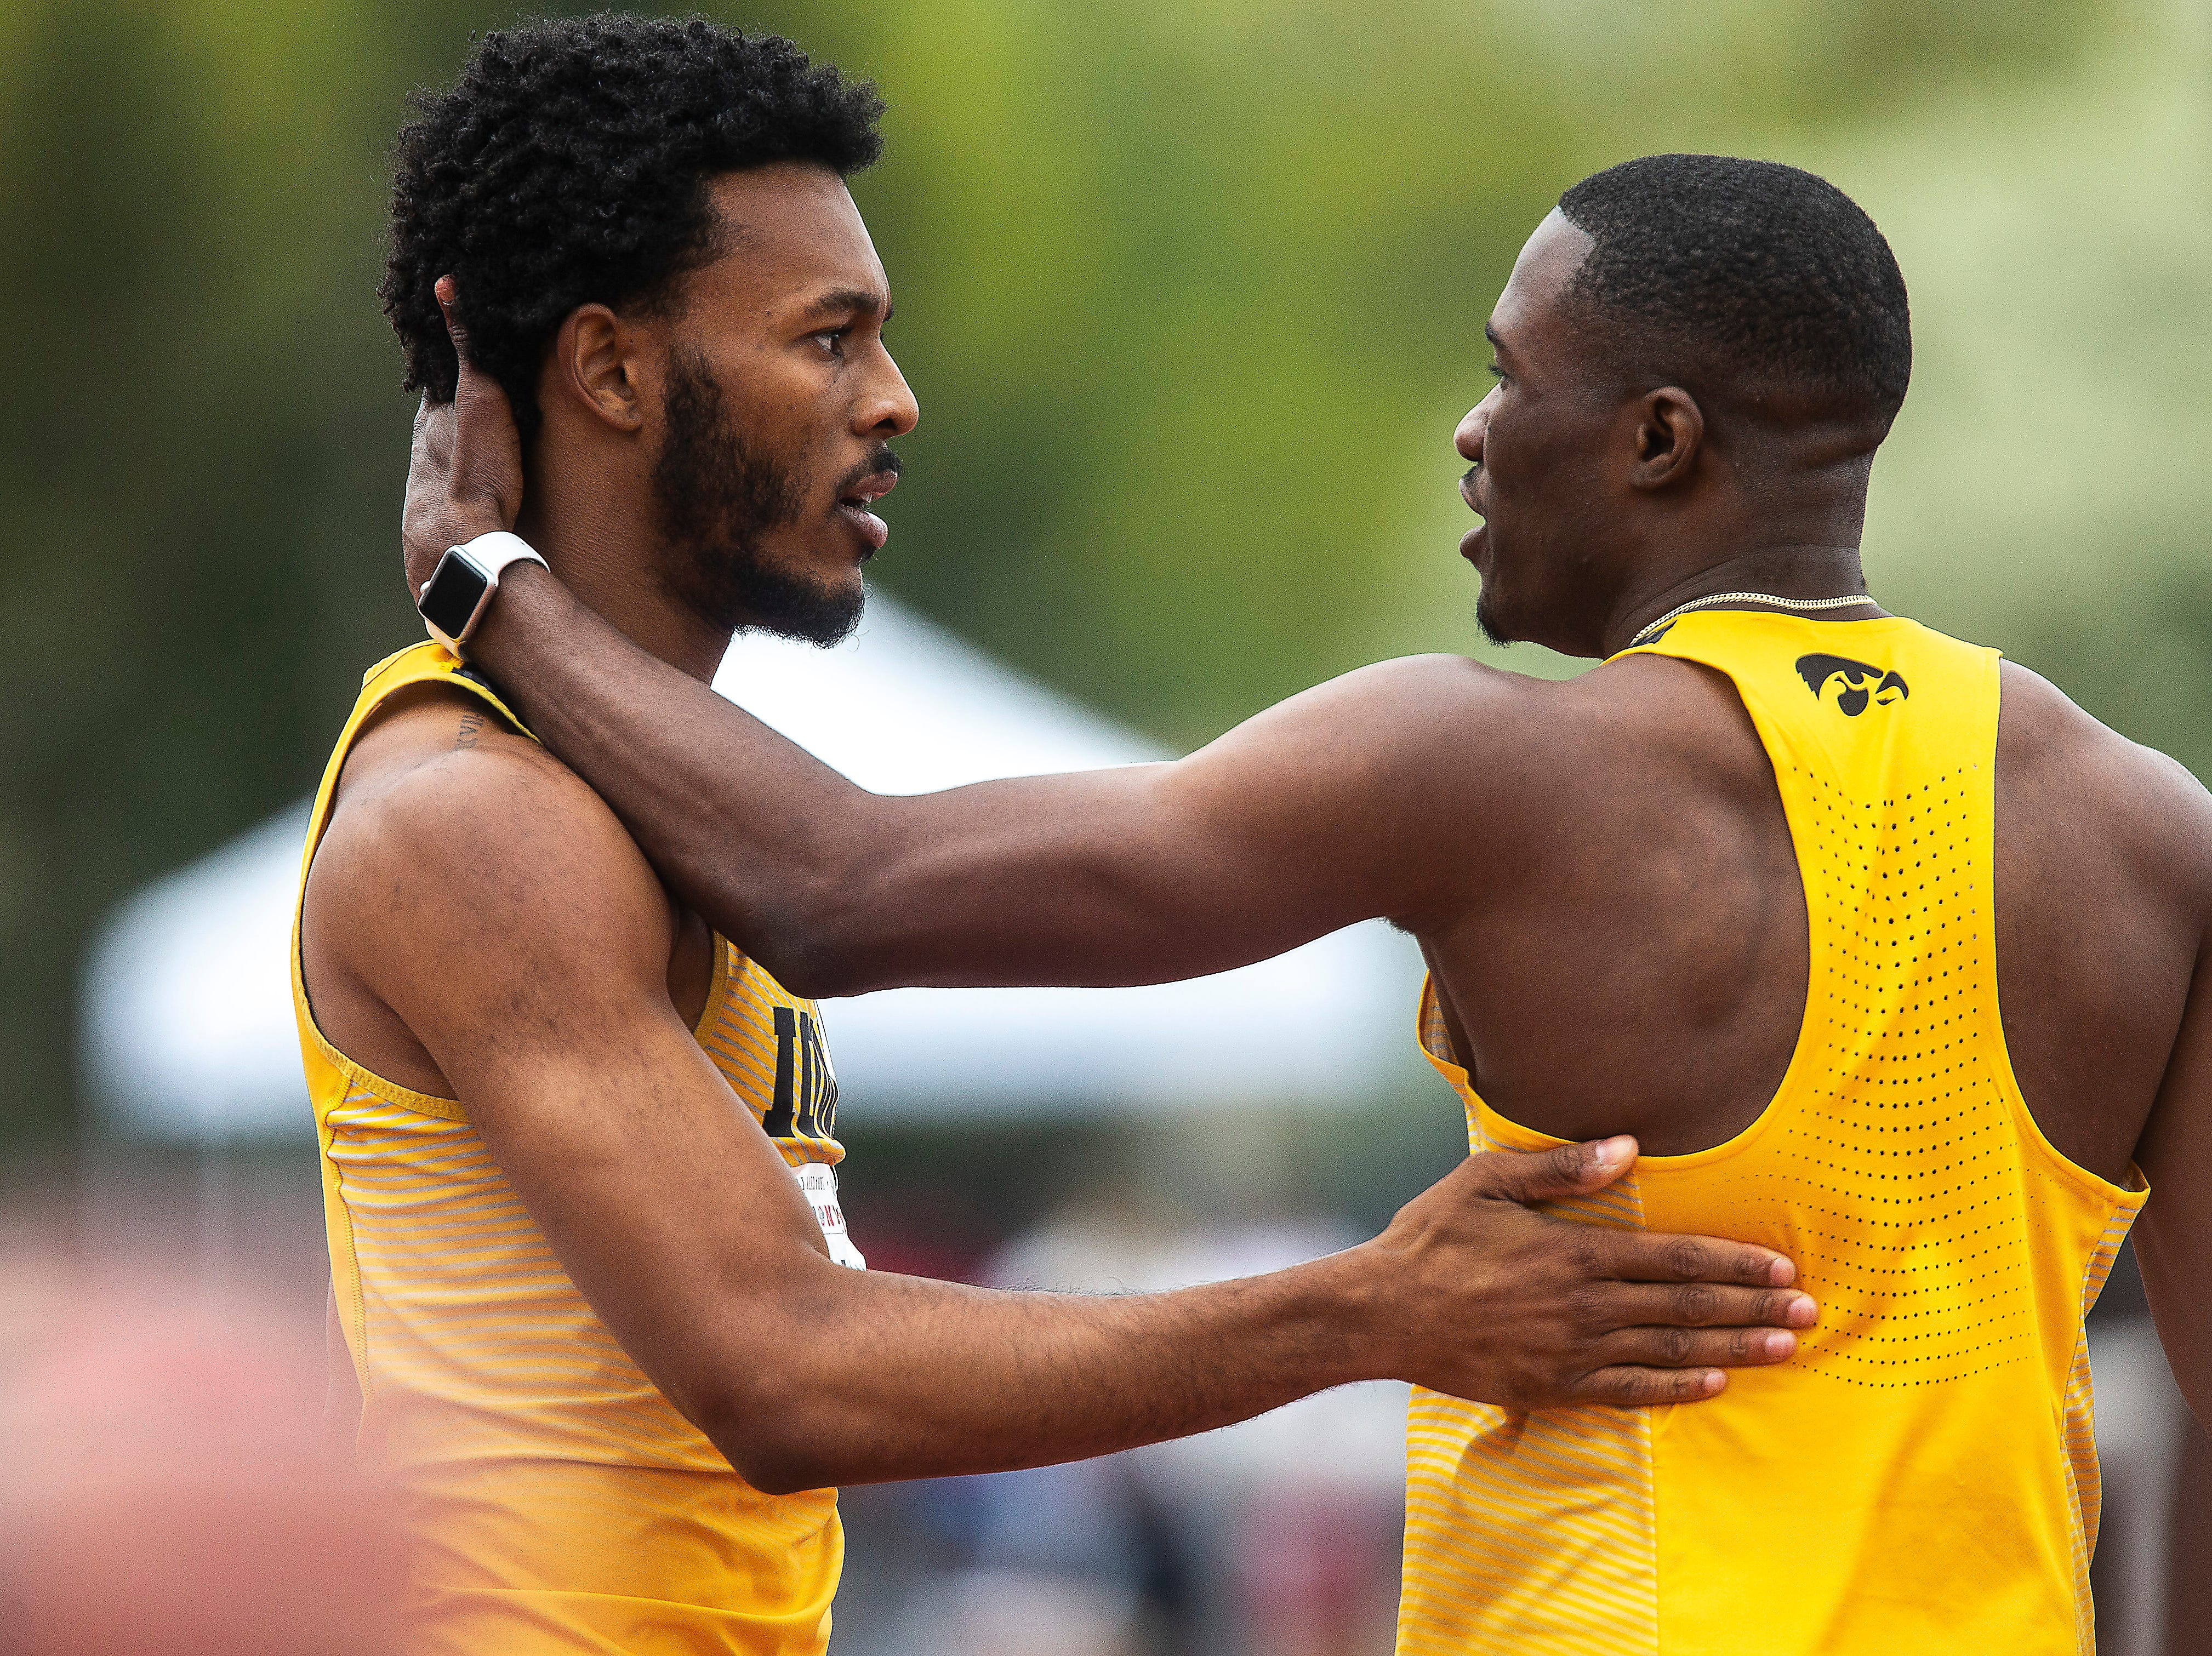 Iowa junior Karayme Bartley, right, embraces teammate Mar'yea Harris after competing in the 400 meter finals during the final day of Big Ten track and field outdoor championships, Sunday, May 12, 2019, at Francis X. Cretzmeyer Track on the University of Iowa campus in Iowa City, Iowa. Bartley finished second, with a time of 45.80. Harris finished first, with a time of 45.67.